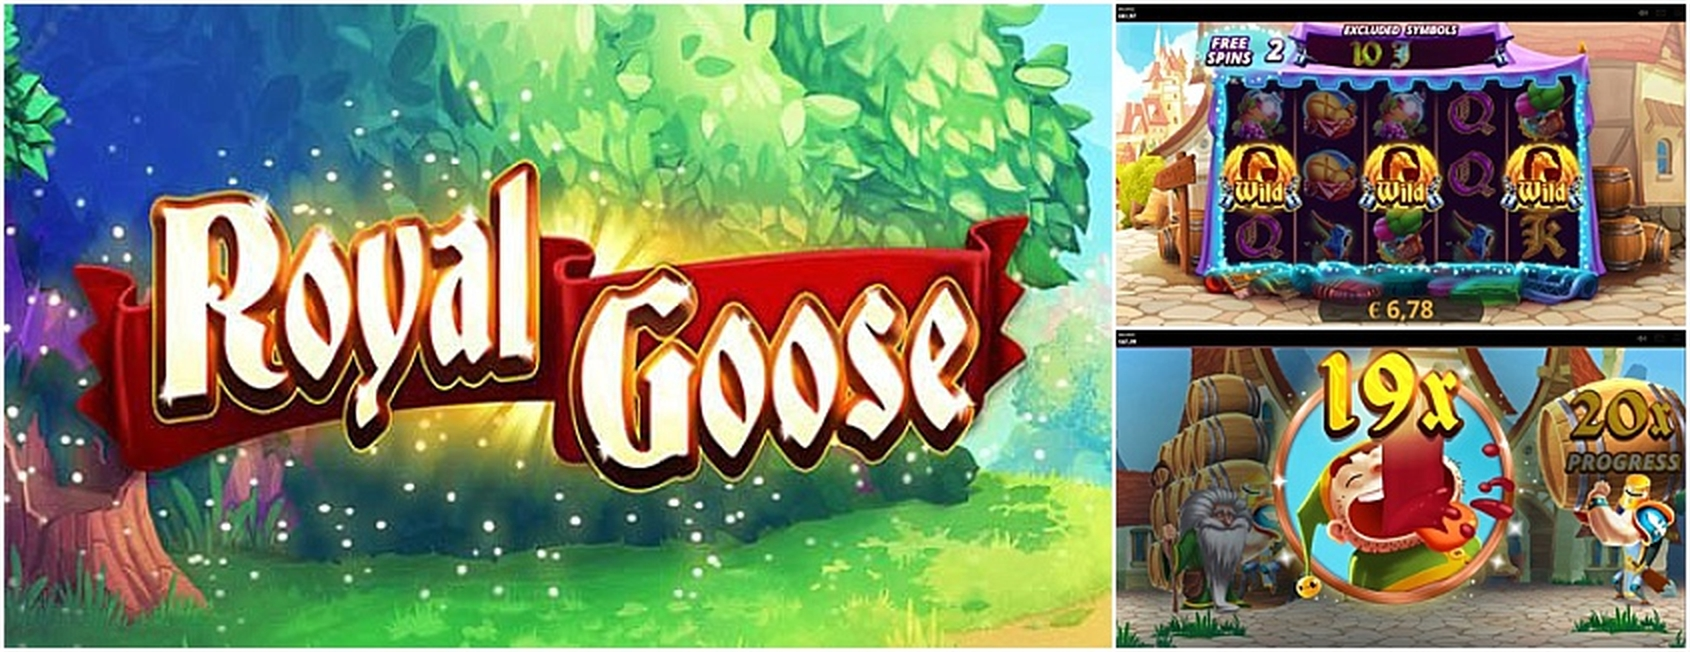 Royal Goose Online Slot Demo Game by Cayetano Gaming